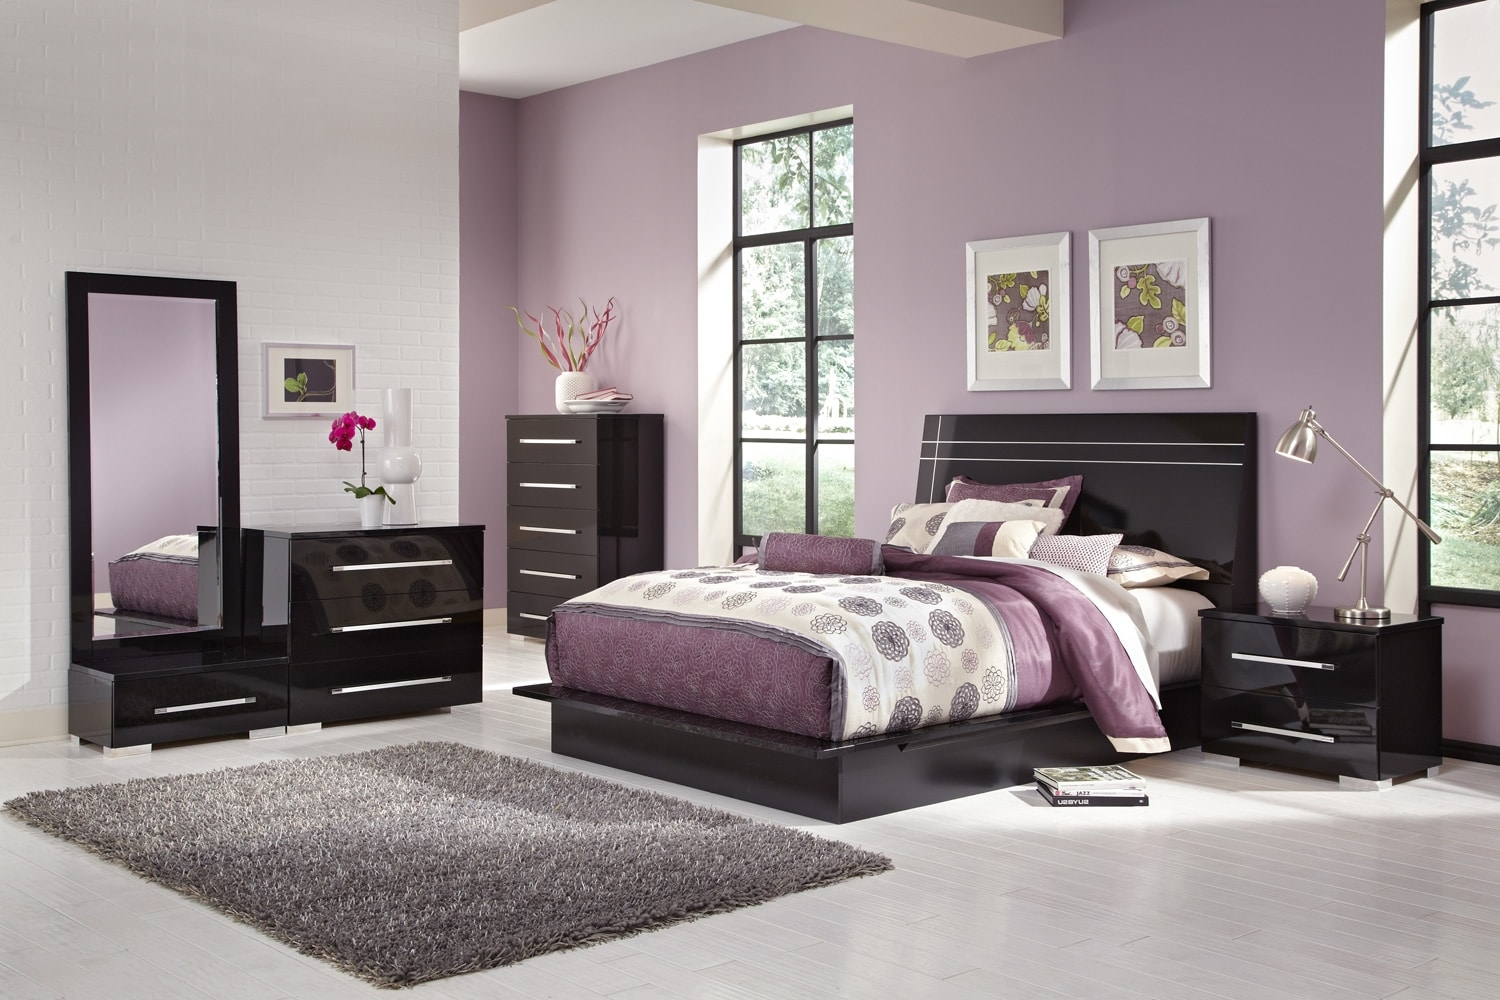 dimora bedroom set dimora 7 king panel bedroom set black value city 11428